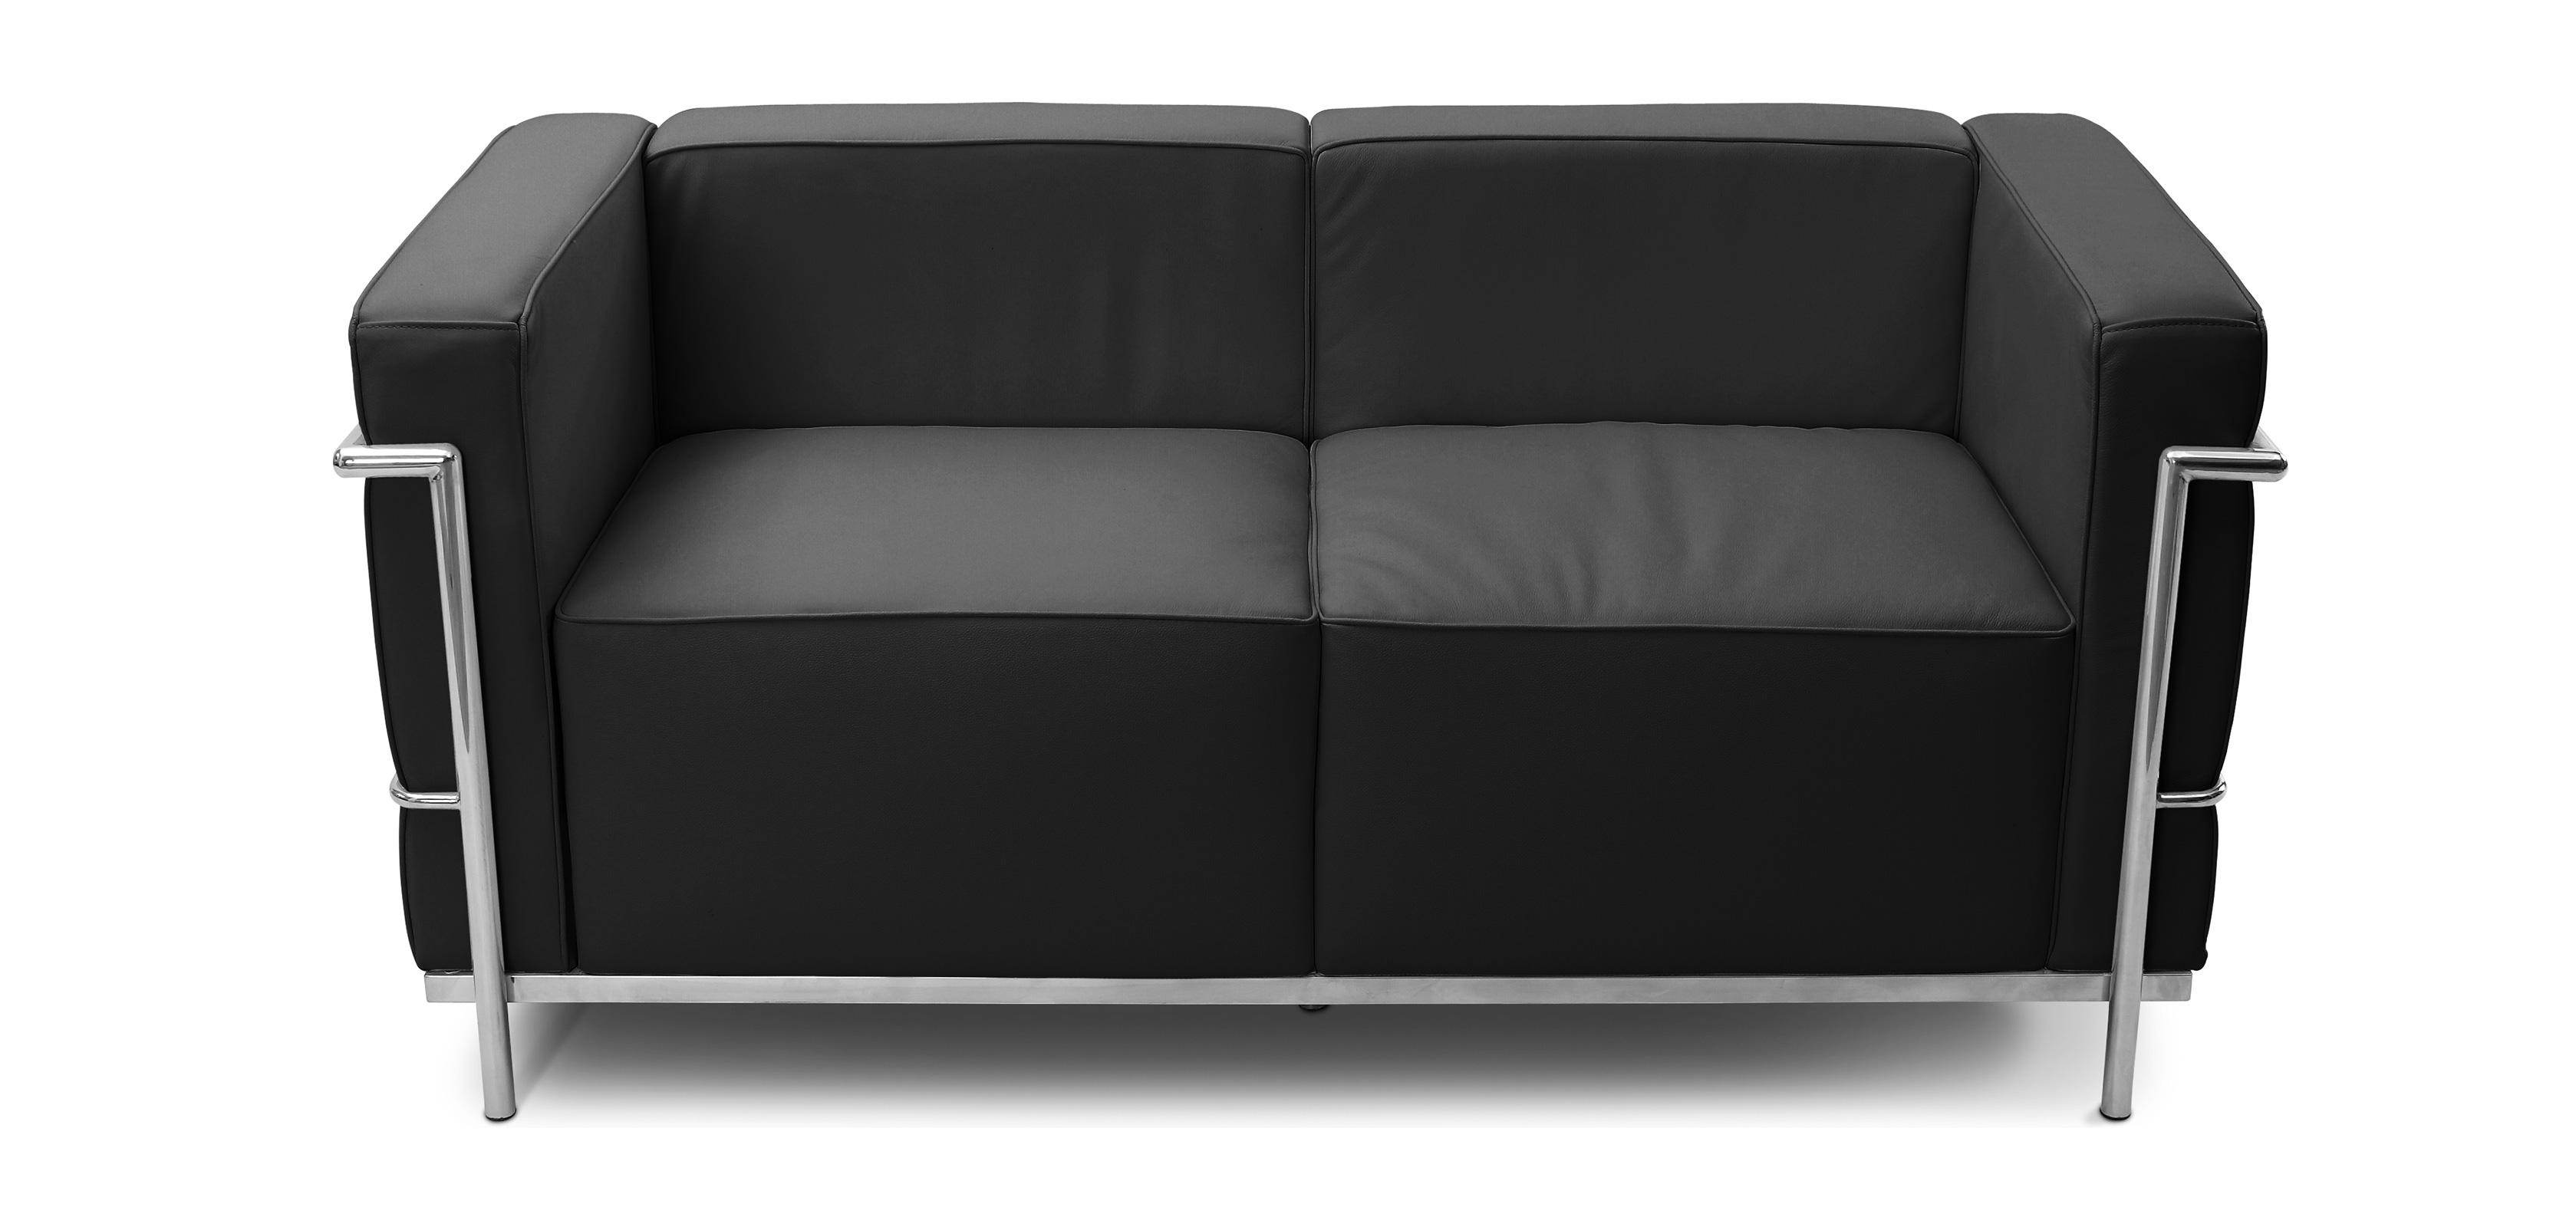 canap design kart3 2 places simili cuir pas cher. Black Bedroom Furniture Sets. Home Design Ideas